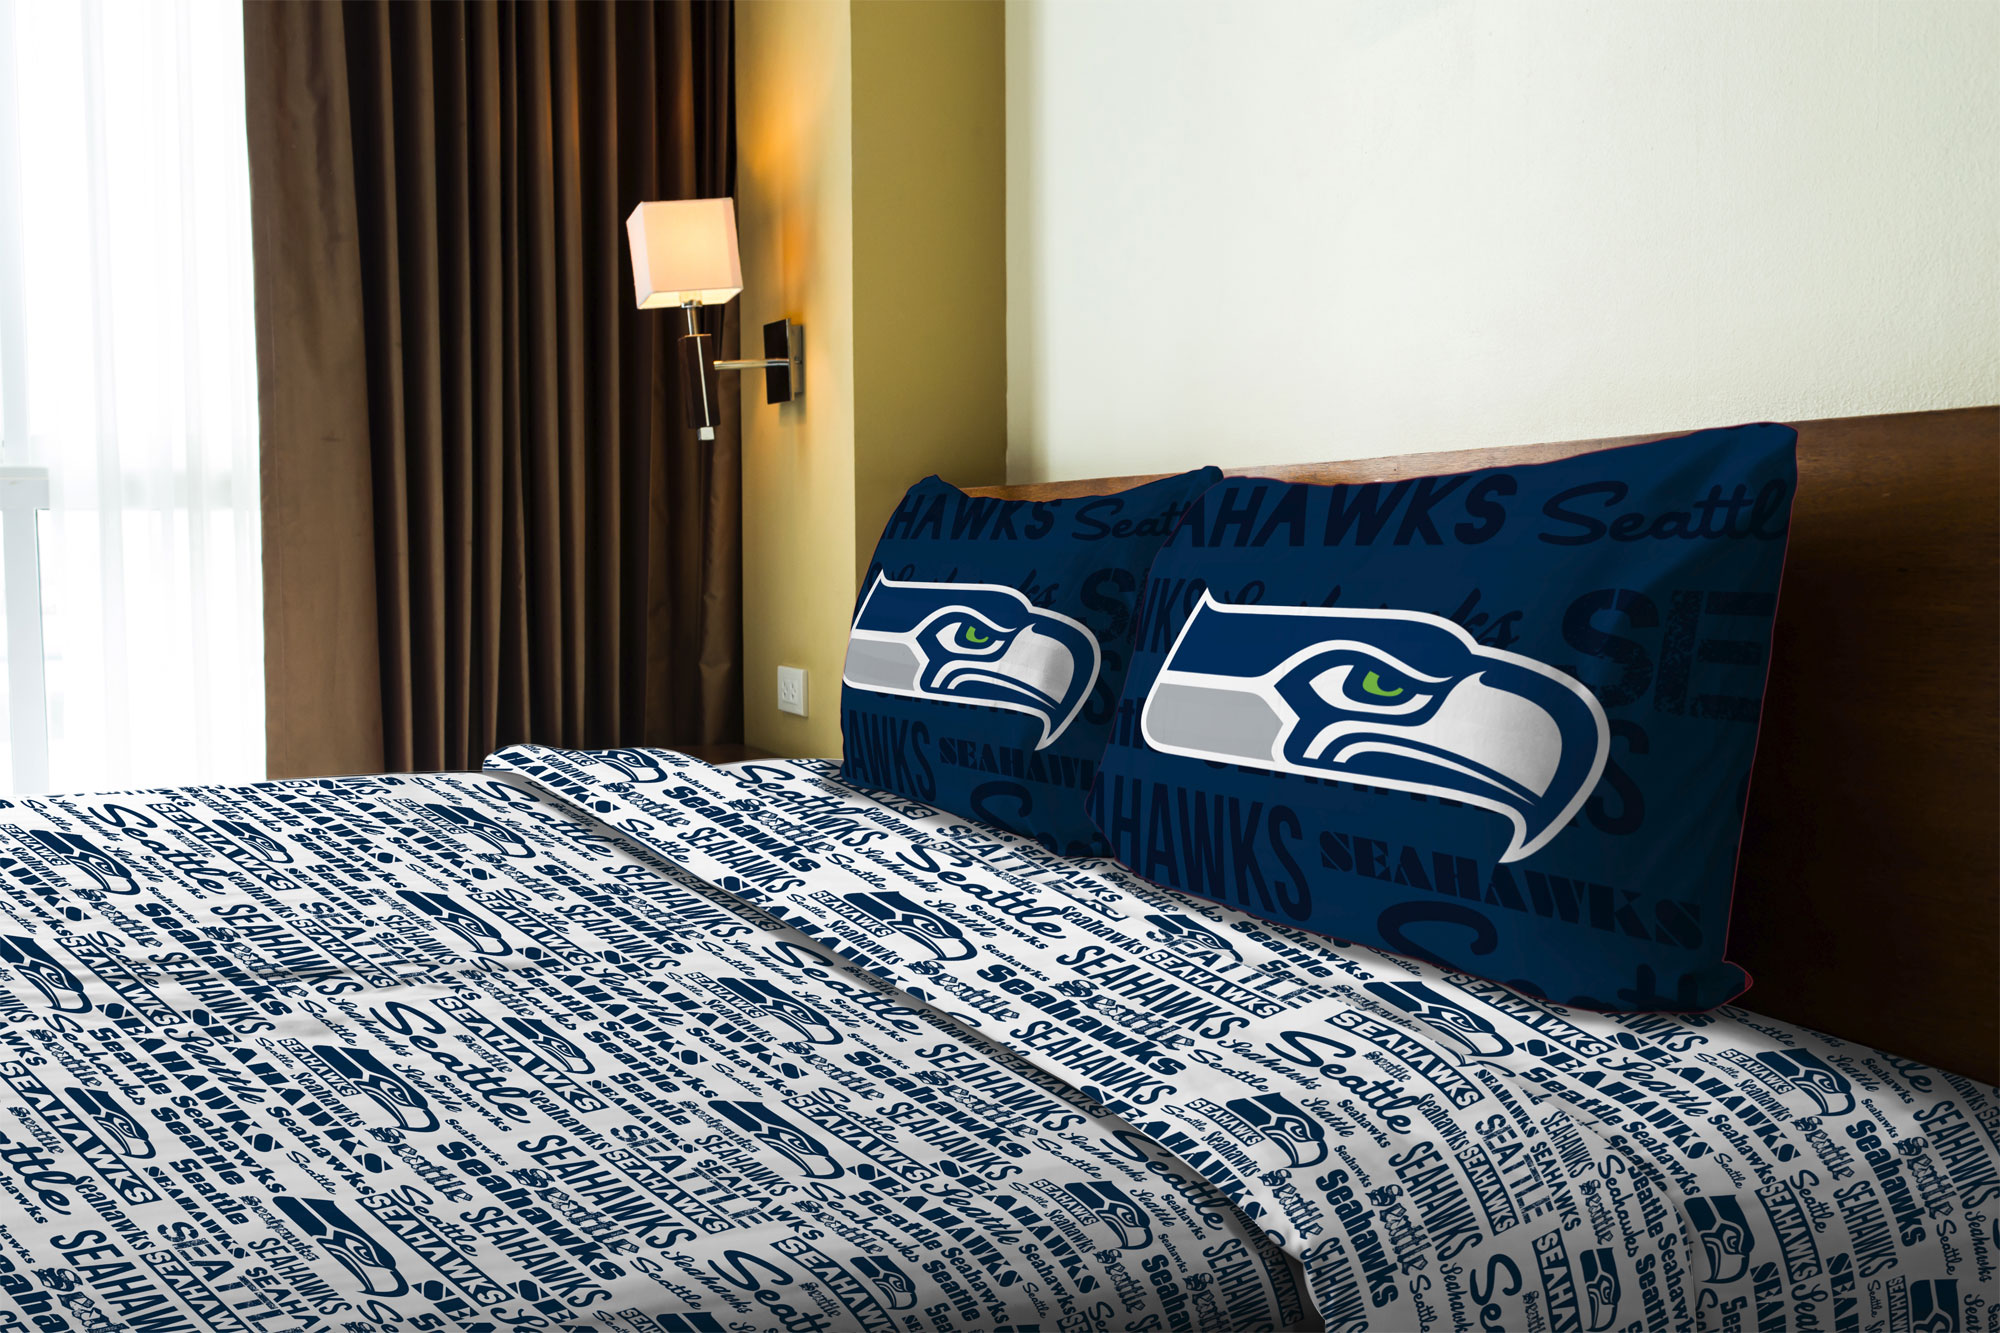 Nfl bedding for boys - Nfl Bedding For Boys 9